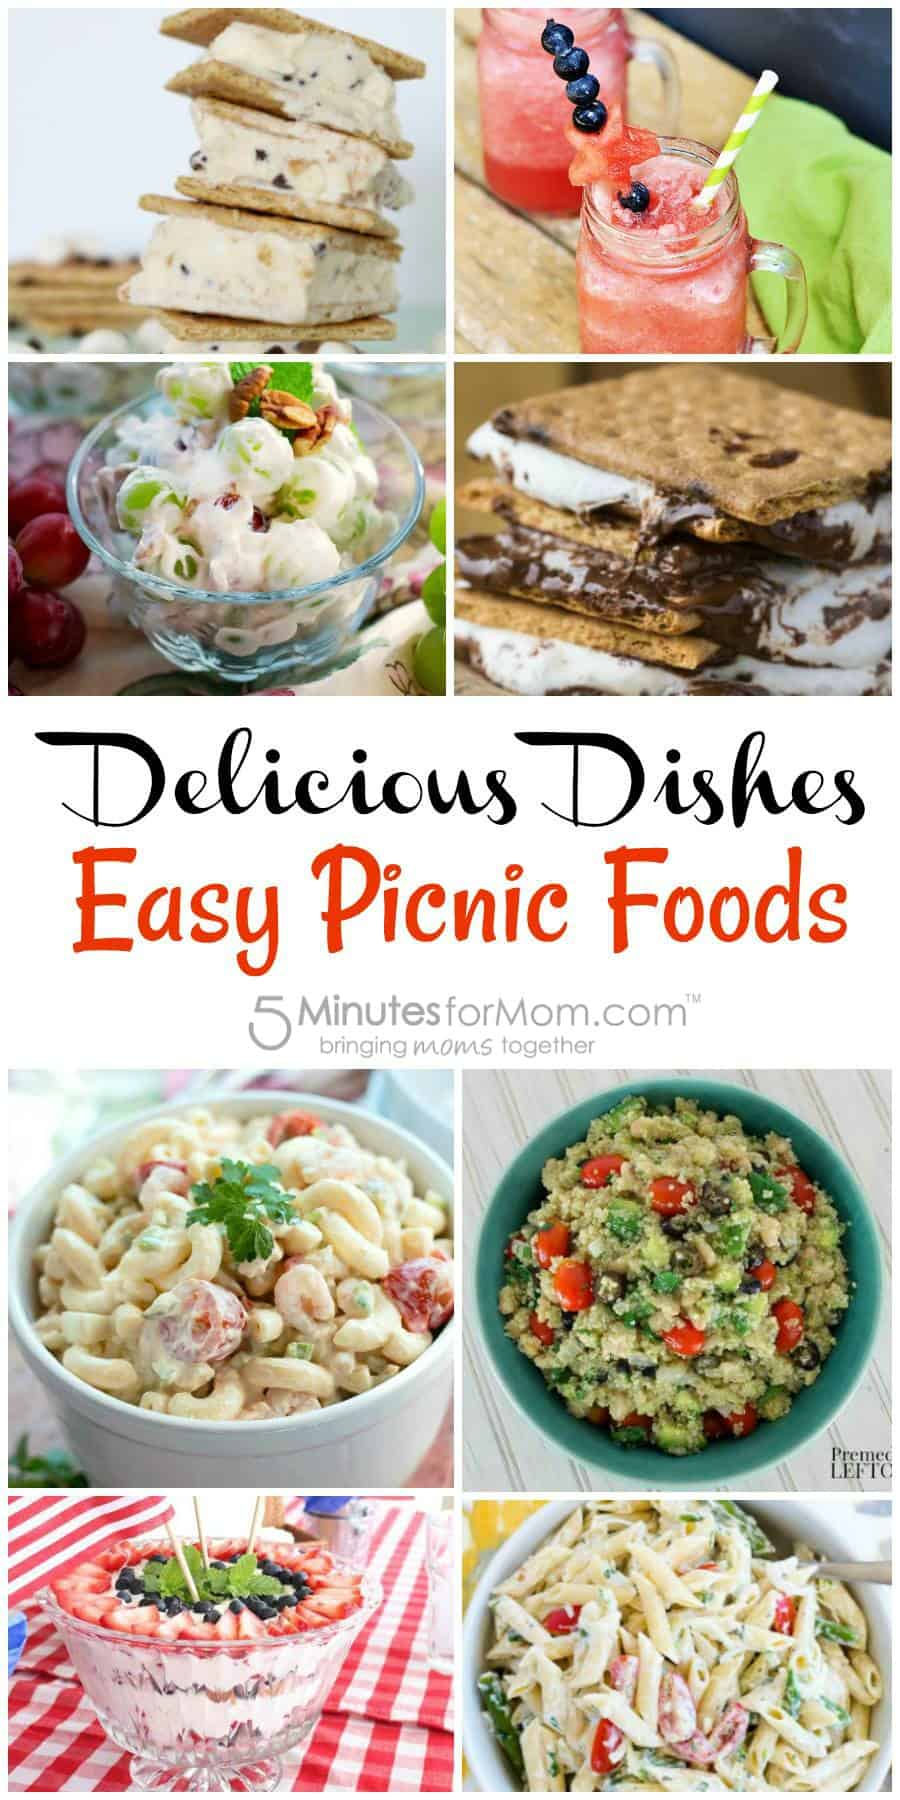 Easy Picnic Food - Delicious Dishes Recipe Party